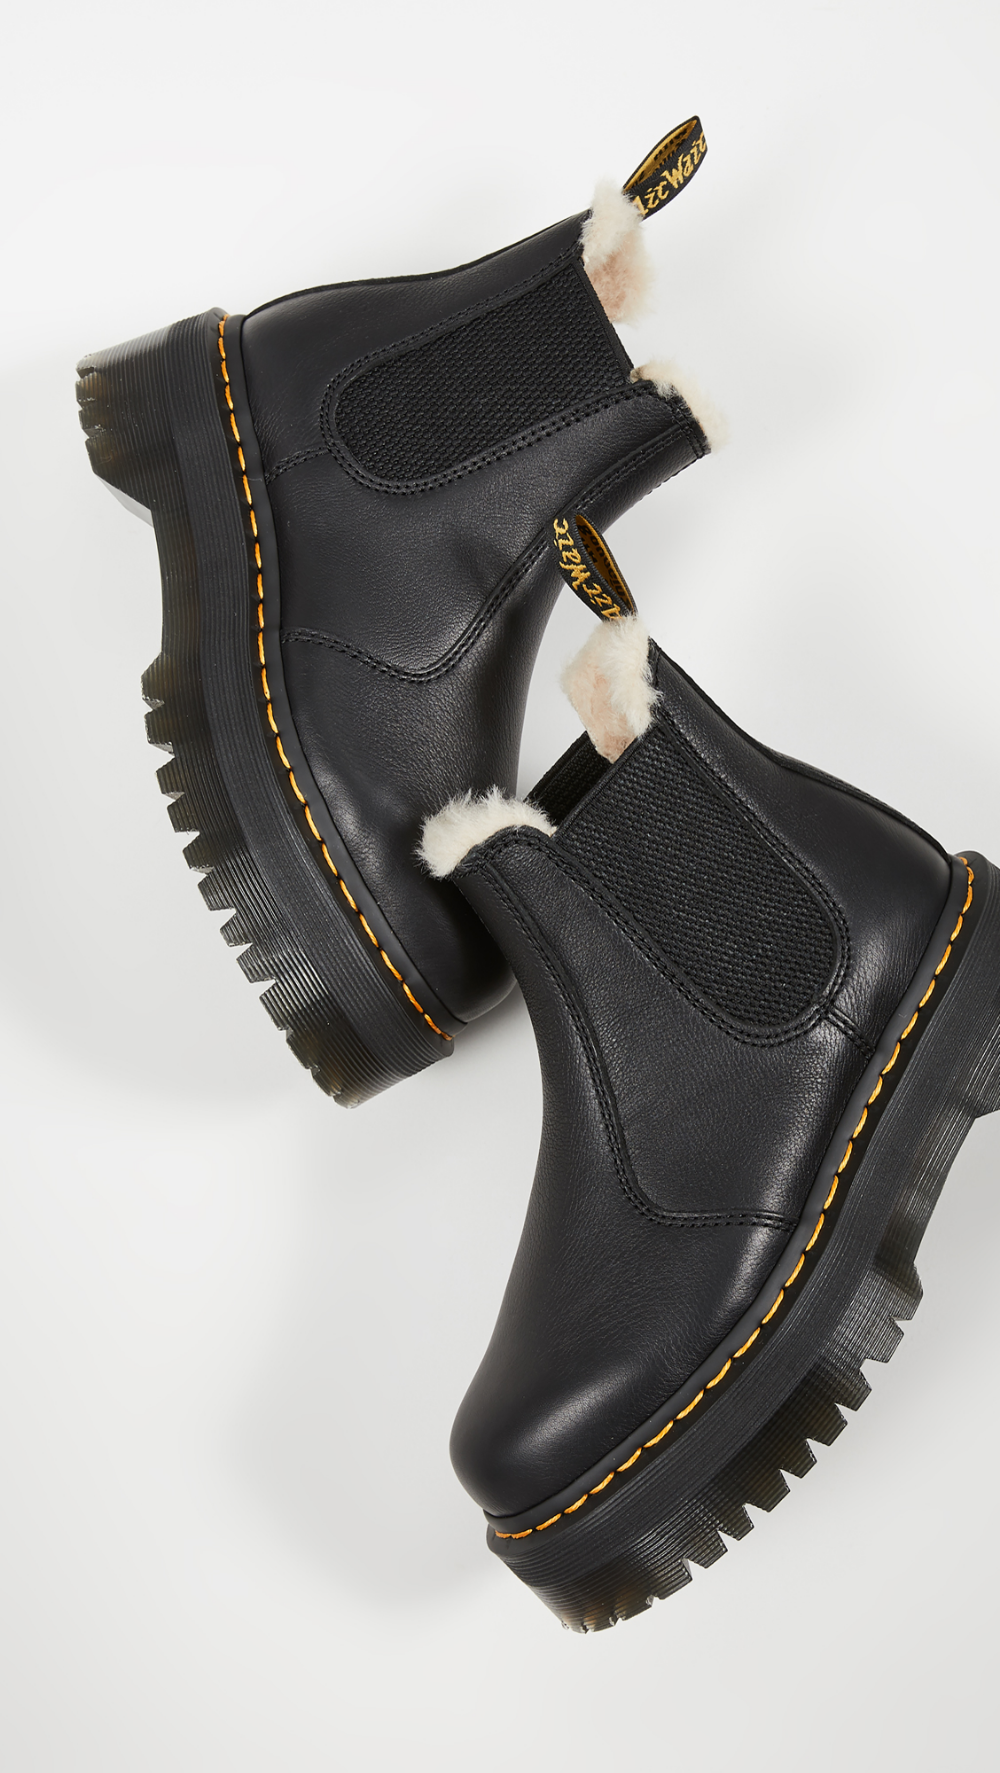 2976 Quad FL Boots in 2020 | Boots, Shoes, Rocky boots